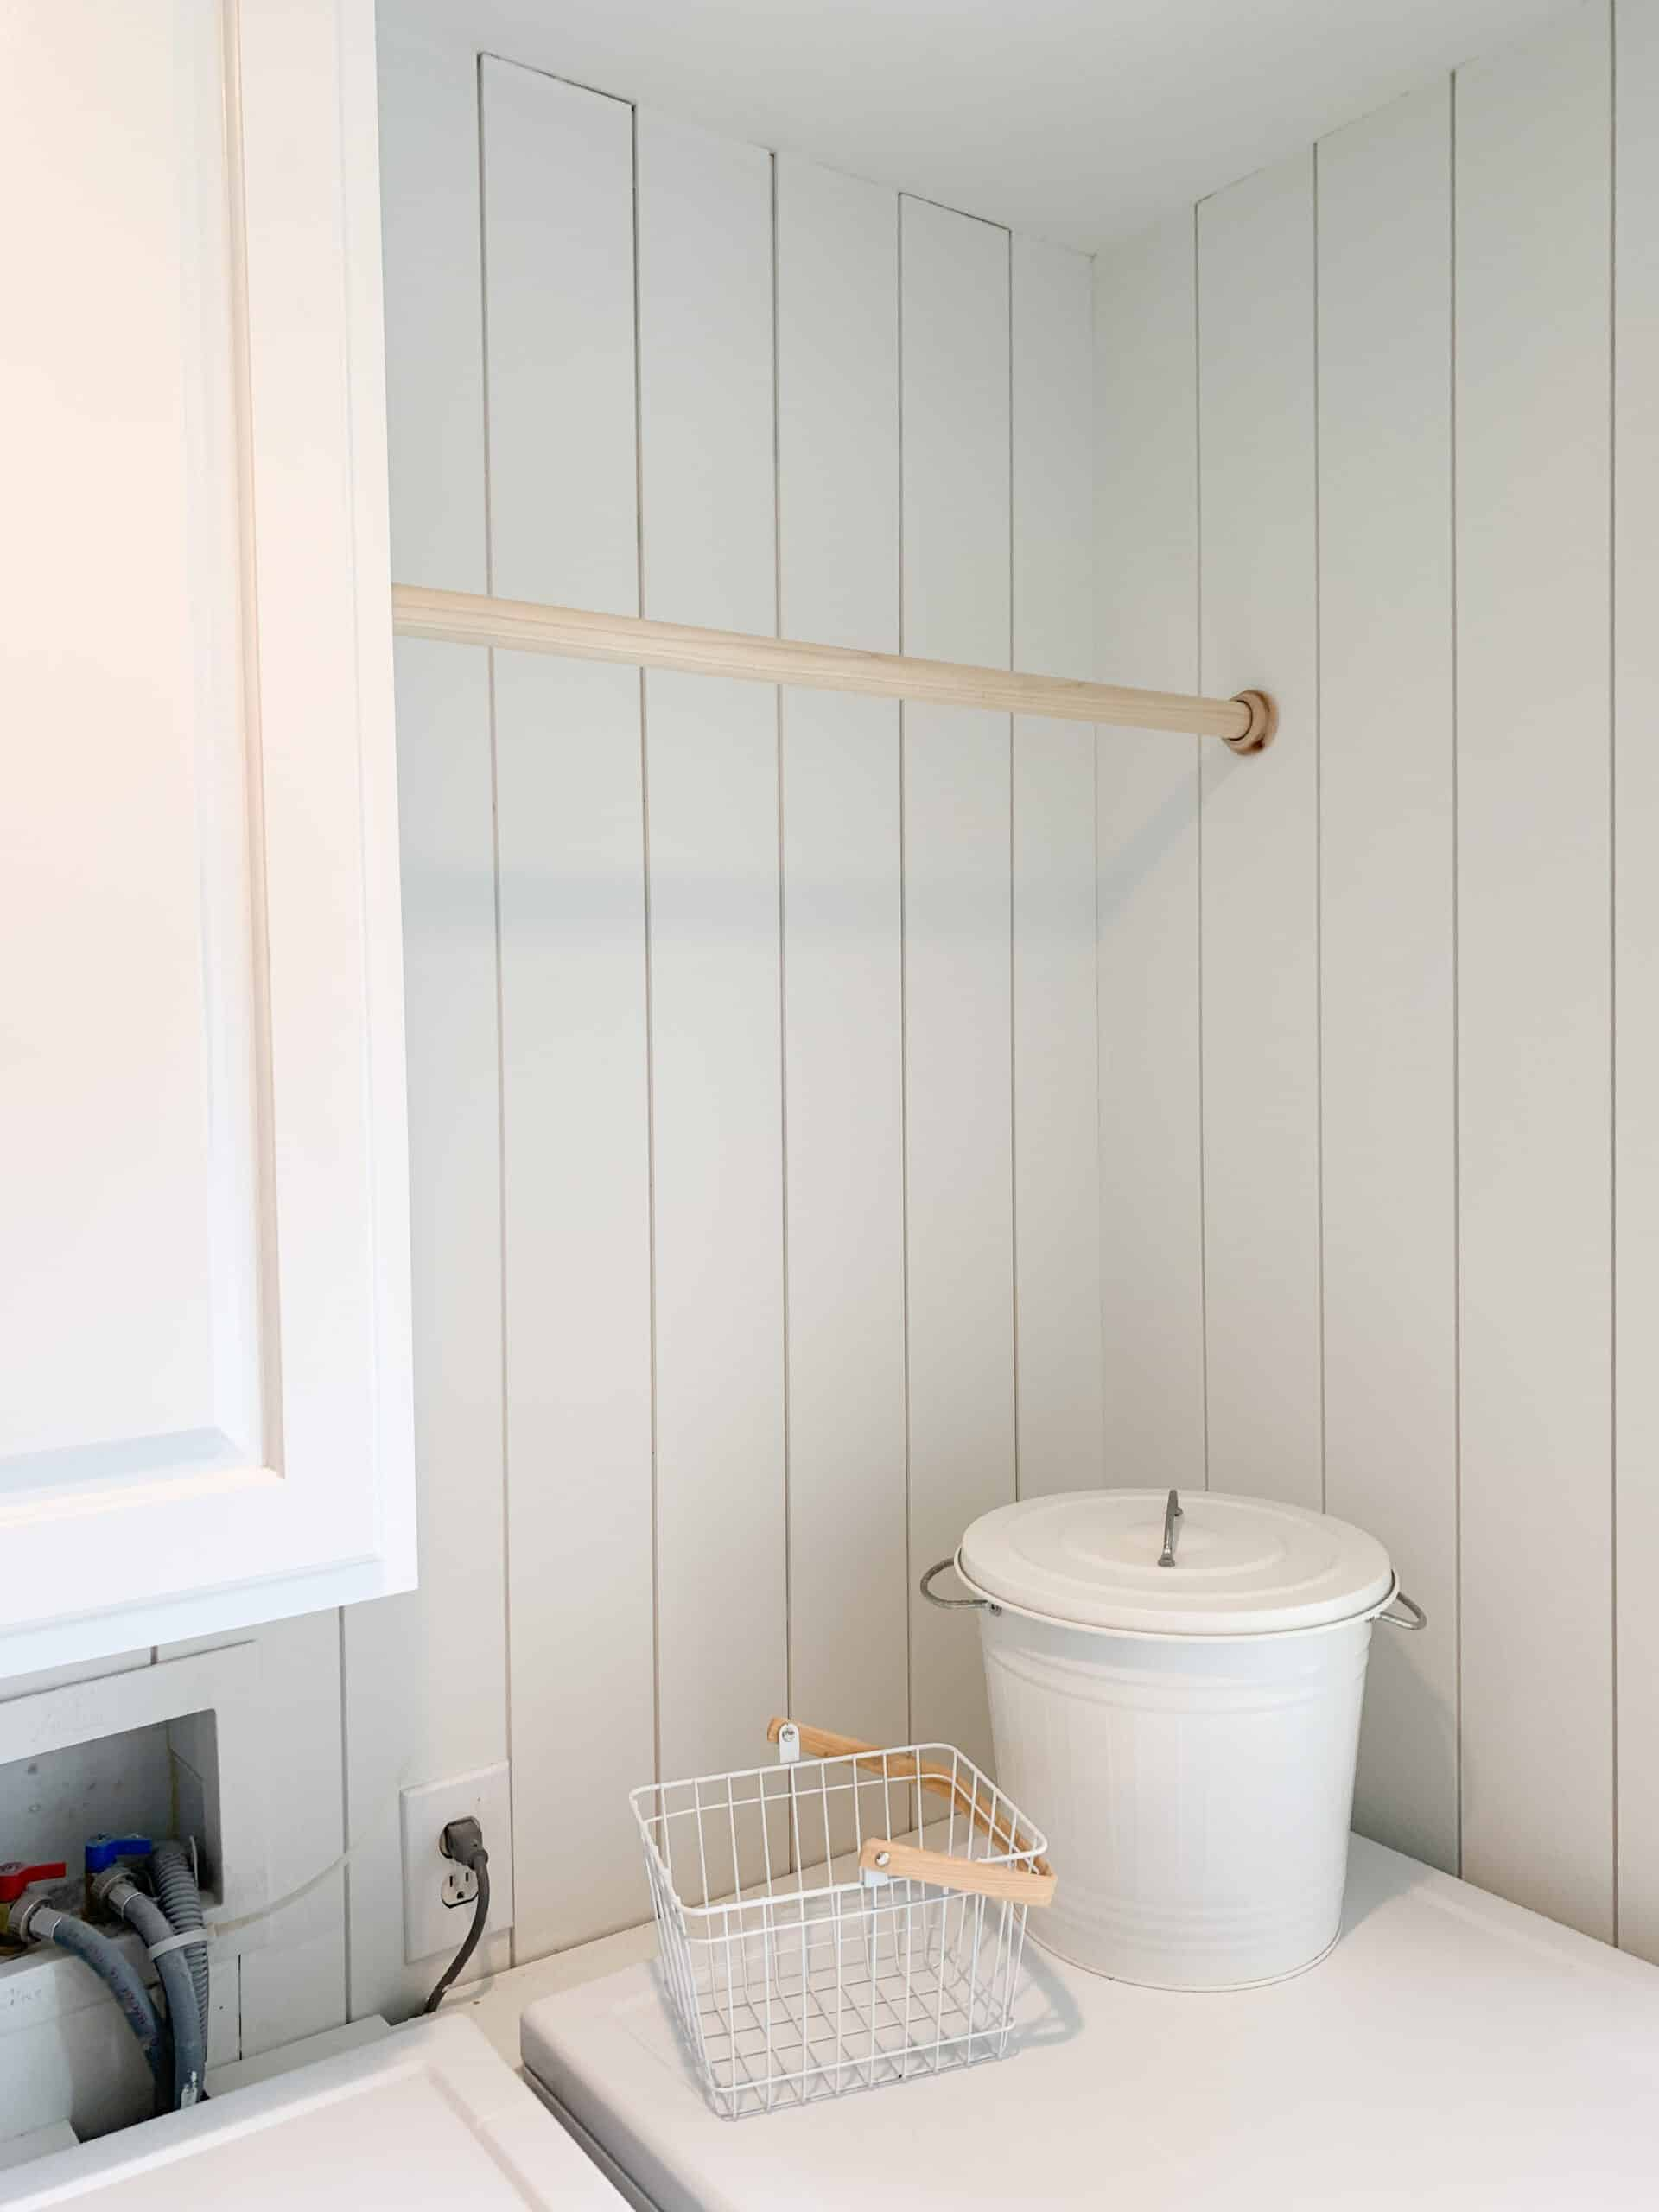 hanging wood bar in laundry room